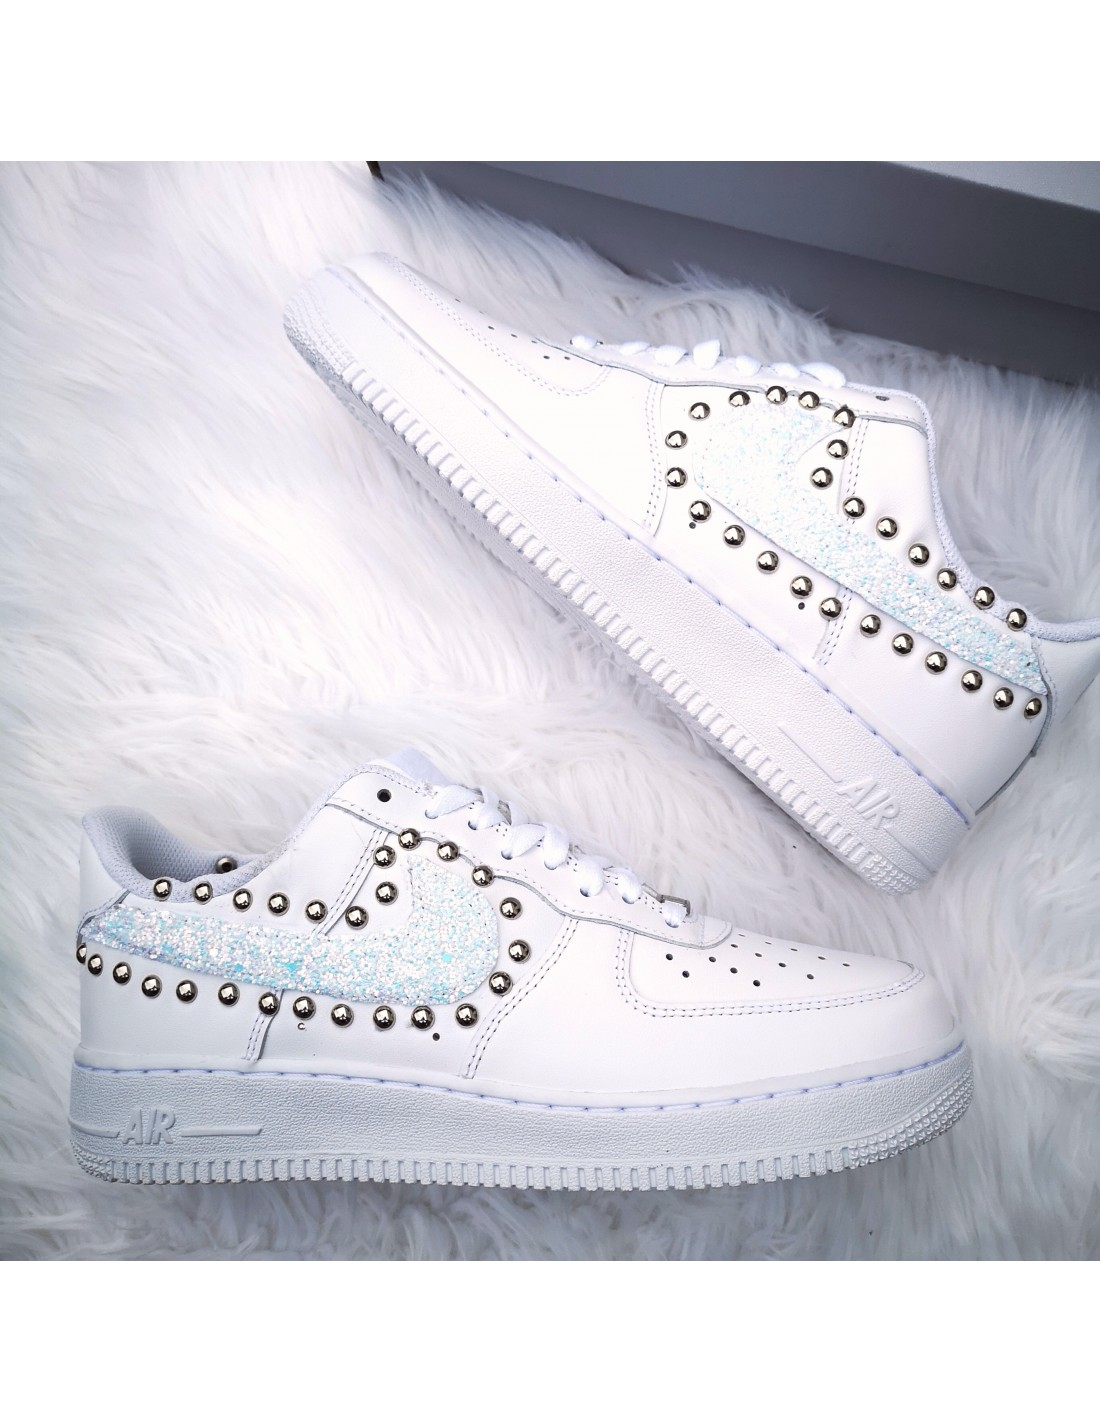 Nike Air Force One AF1 baffo Glitter Frozen e Sfere Argento